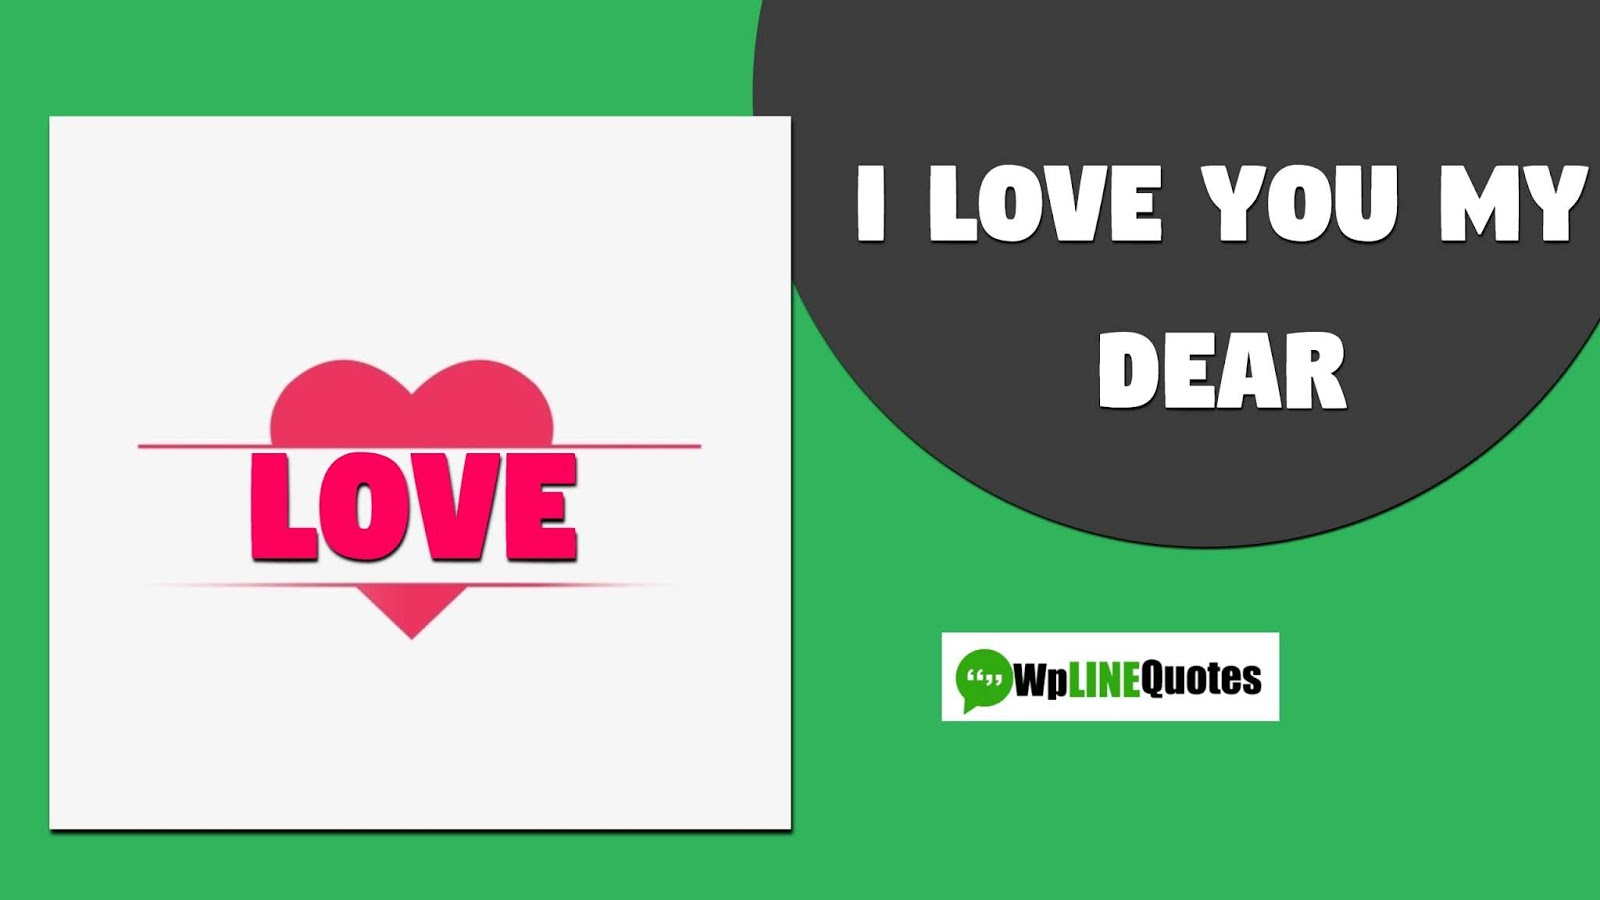 I love you quotes for him to express him your love feelings.